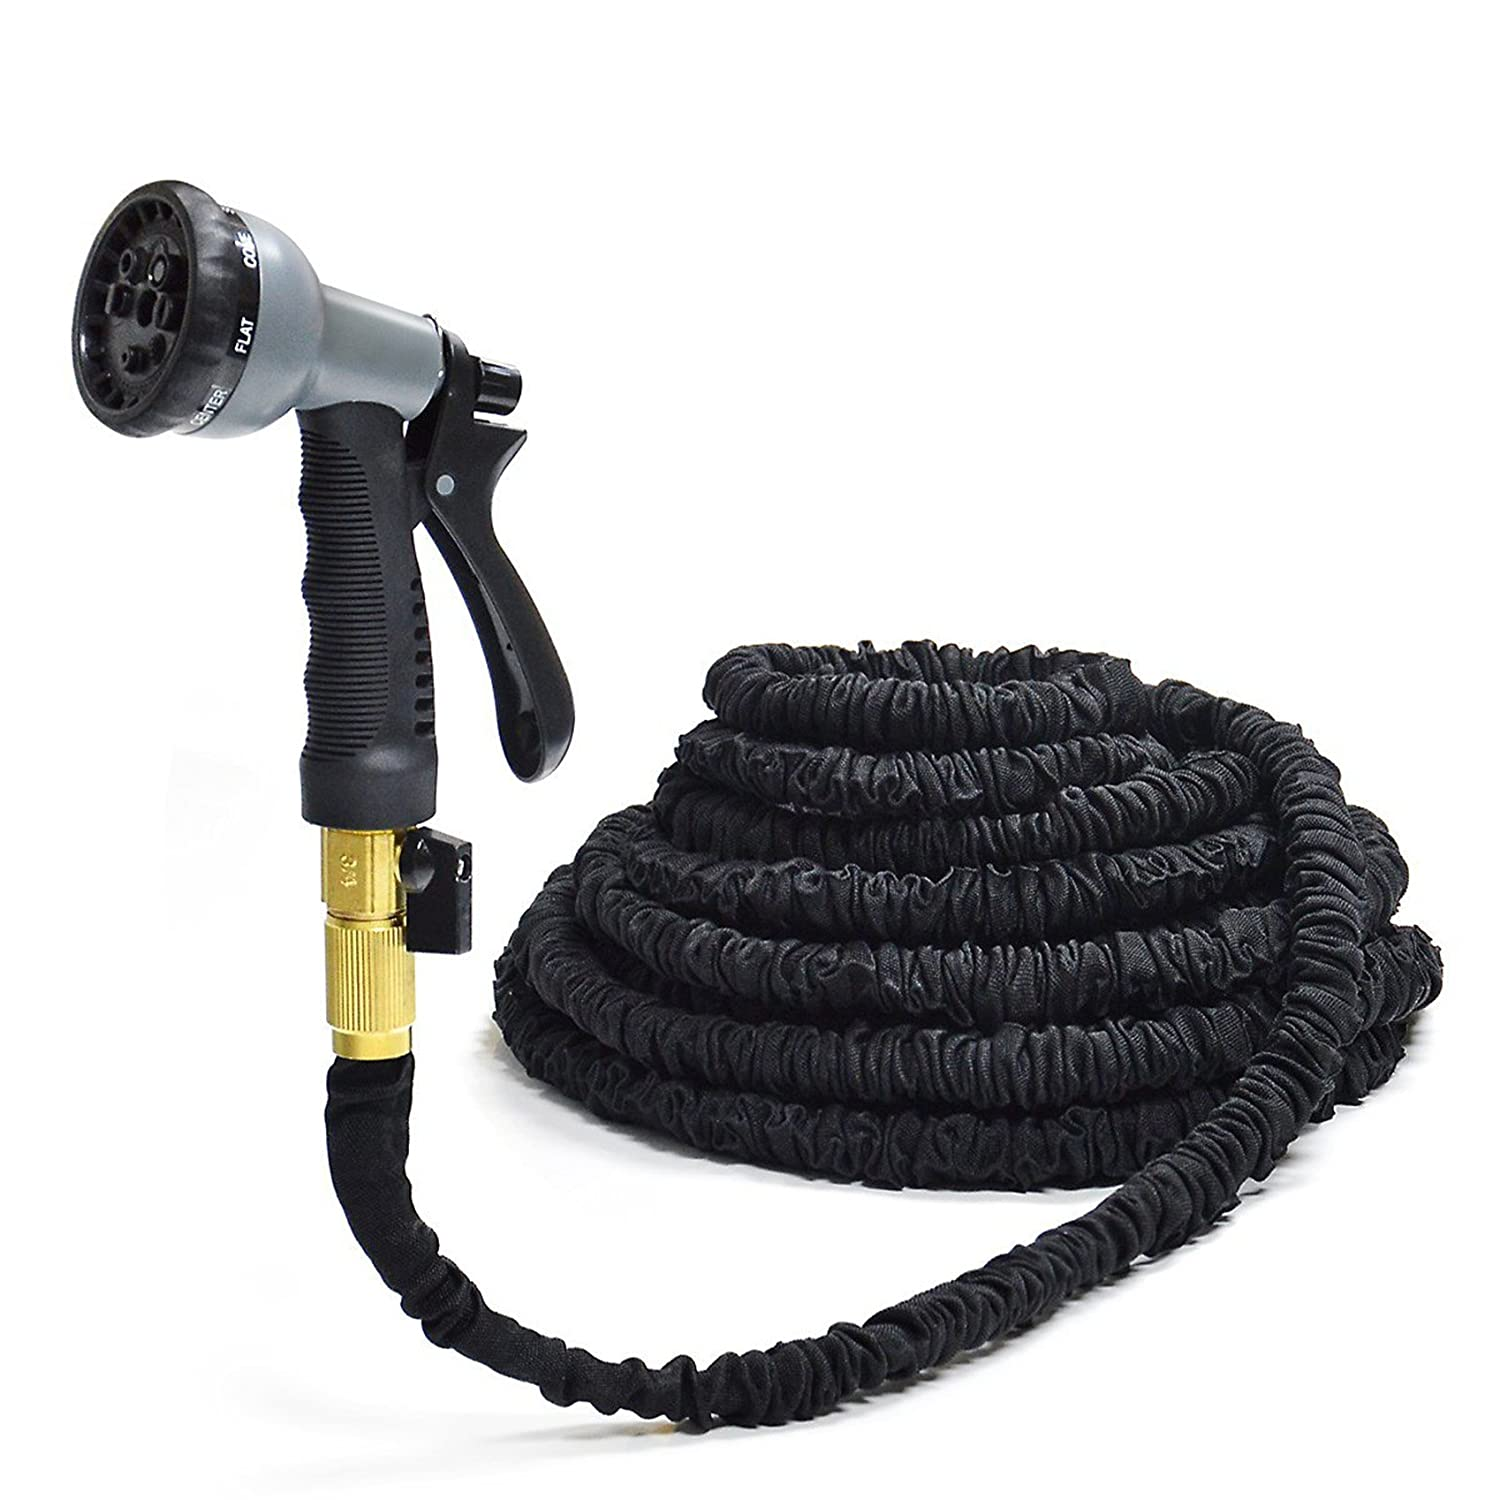 100 Ft Hose MpingT Magic Expandable Flexible Stronger Deluxe Garden Water Hose Garden Hose Flexible Expandable Hose Pipe Brass Fittings Magic Hose With 8 Function Spray Nozzle Black